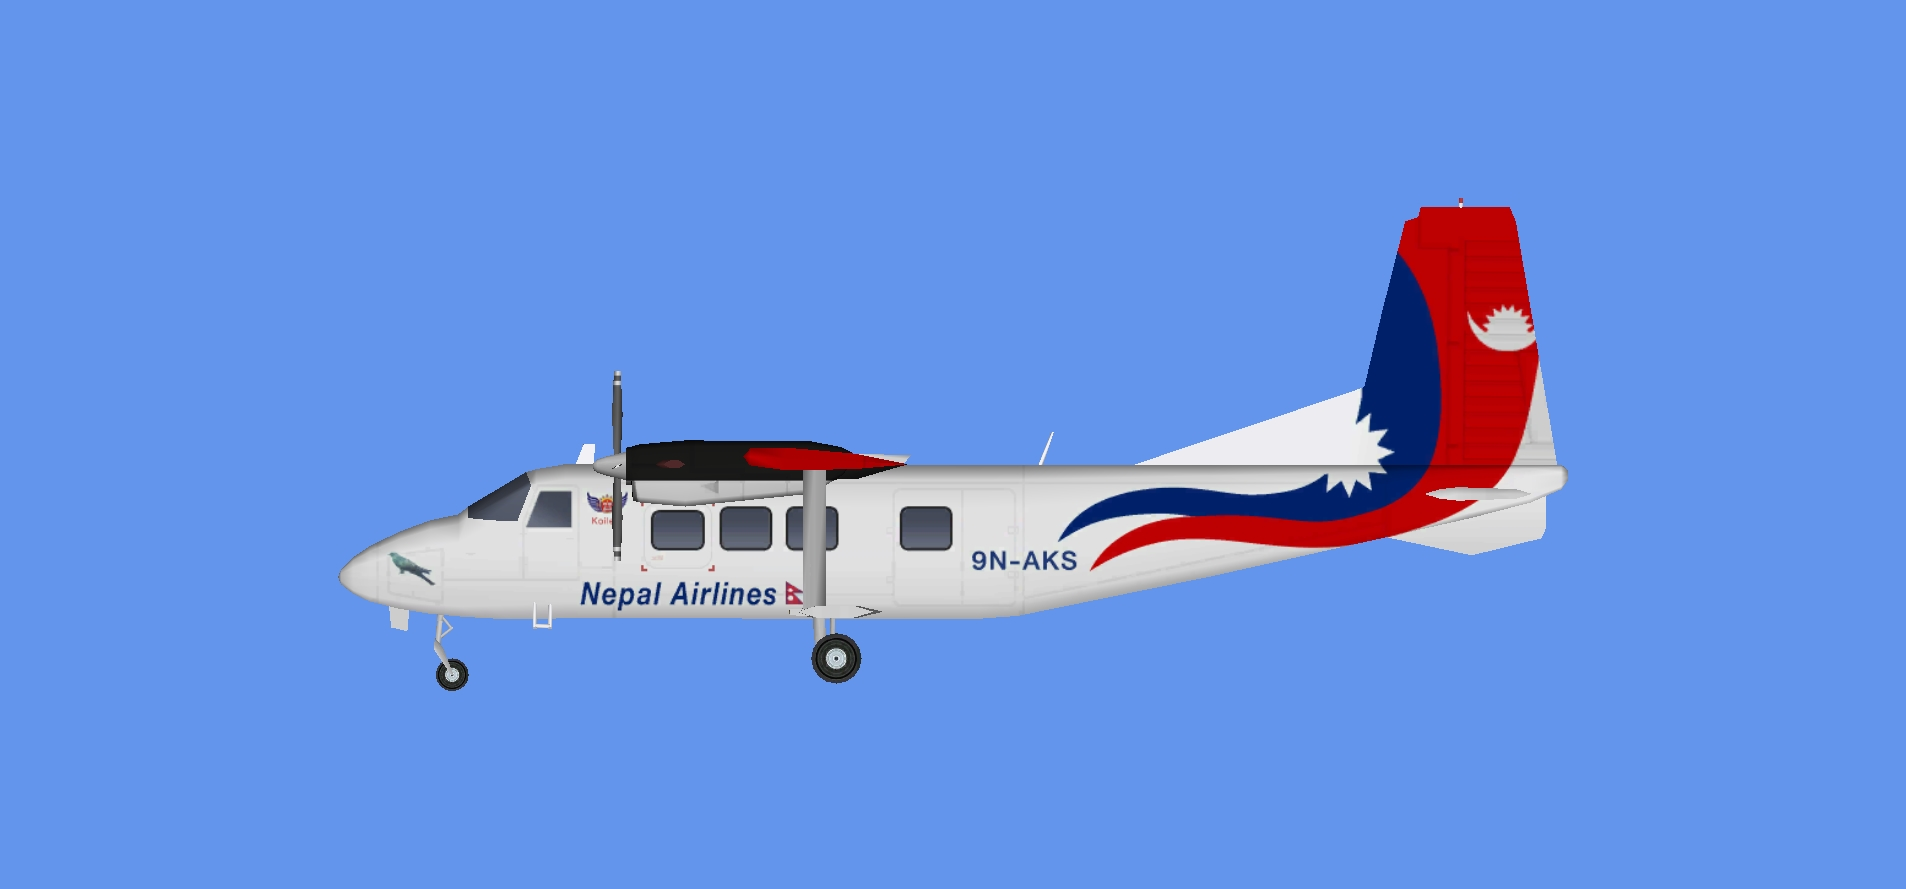 Nepal Airlines Harbin Y-12